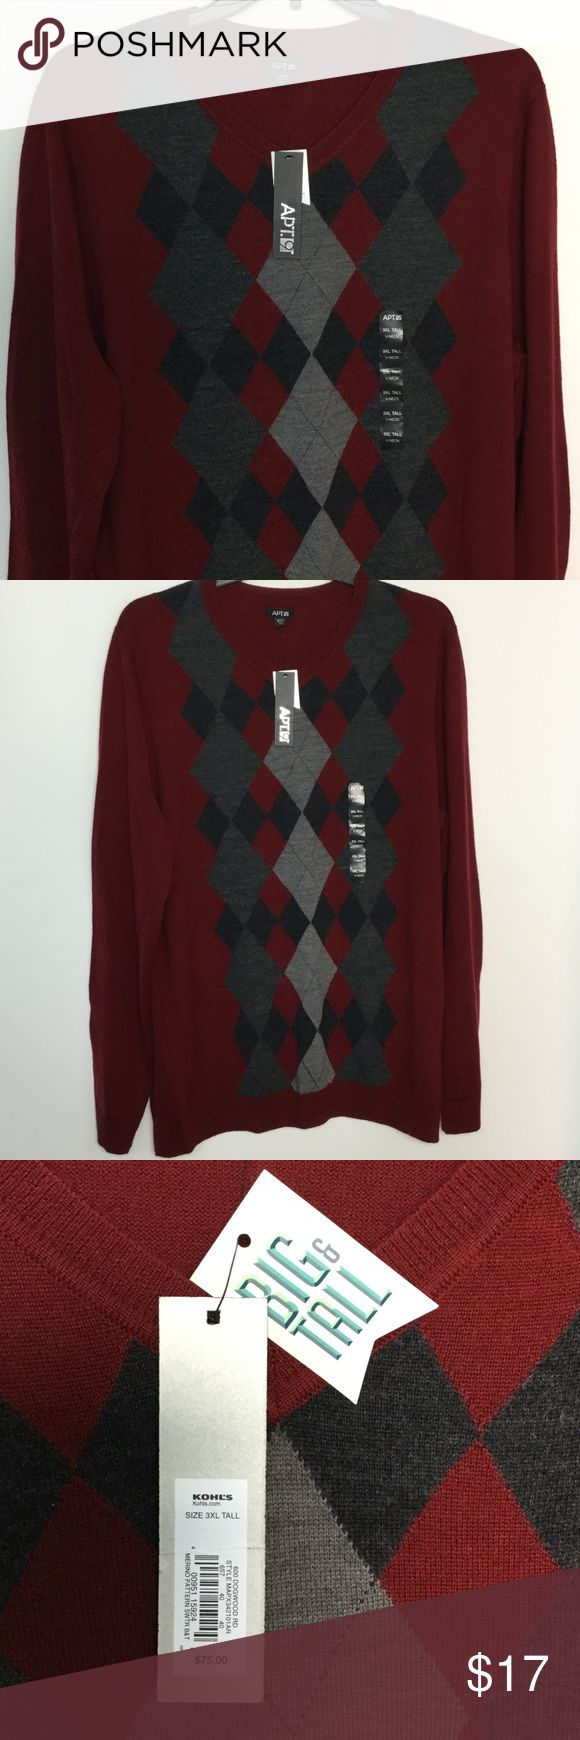 """Apt. 9 V Neck Sweater 3XL Argyle Burgundy Gray NWT NWT New With Tags Retail price $75 Men's 3XLT Big & Tall V-neck Sweater Burgundy Black Gray Argyle Diamond  50% Merino wool 50% Acrylic  Measures chest underarm to underarm 28"""" length 33"""" 7.5 bin 17 Apt. 9 Sweaters V-Neck"""